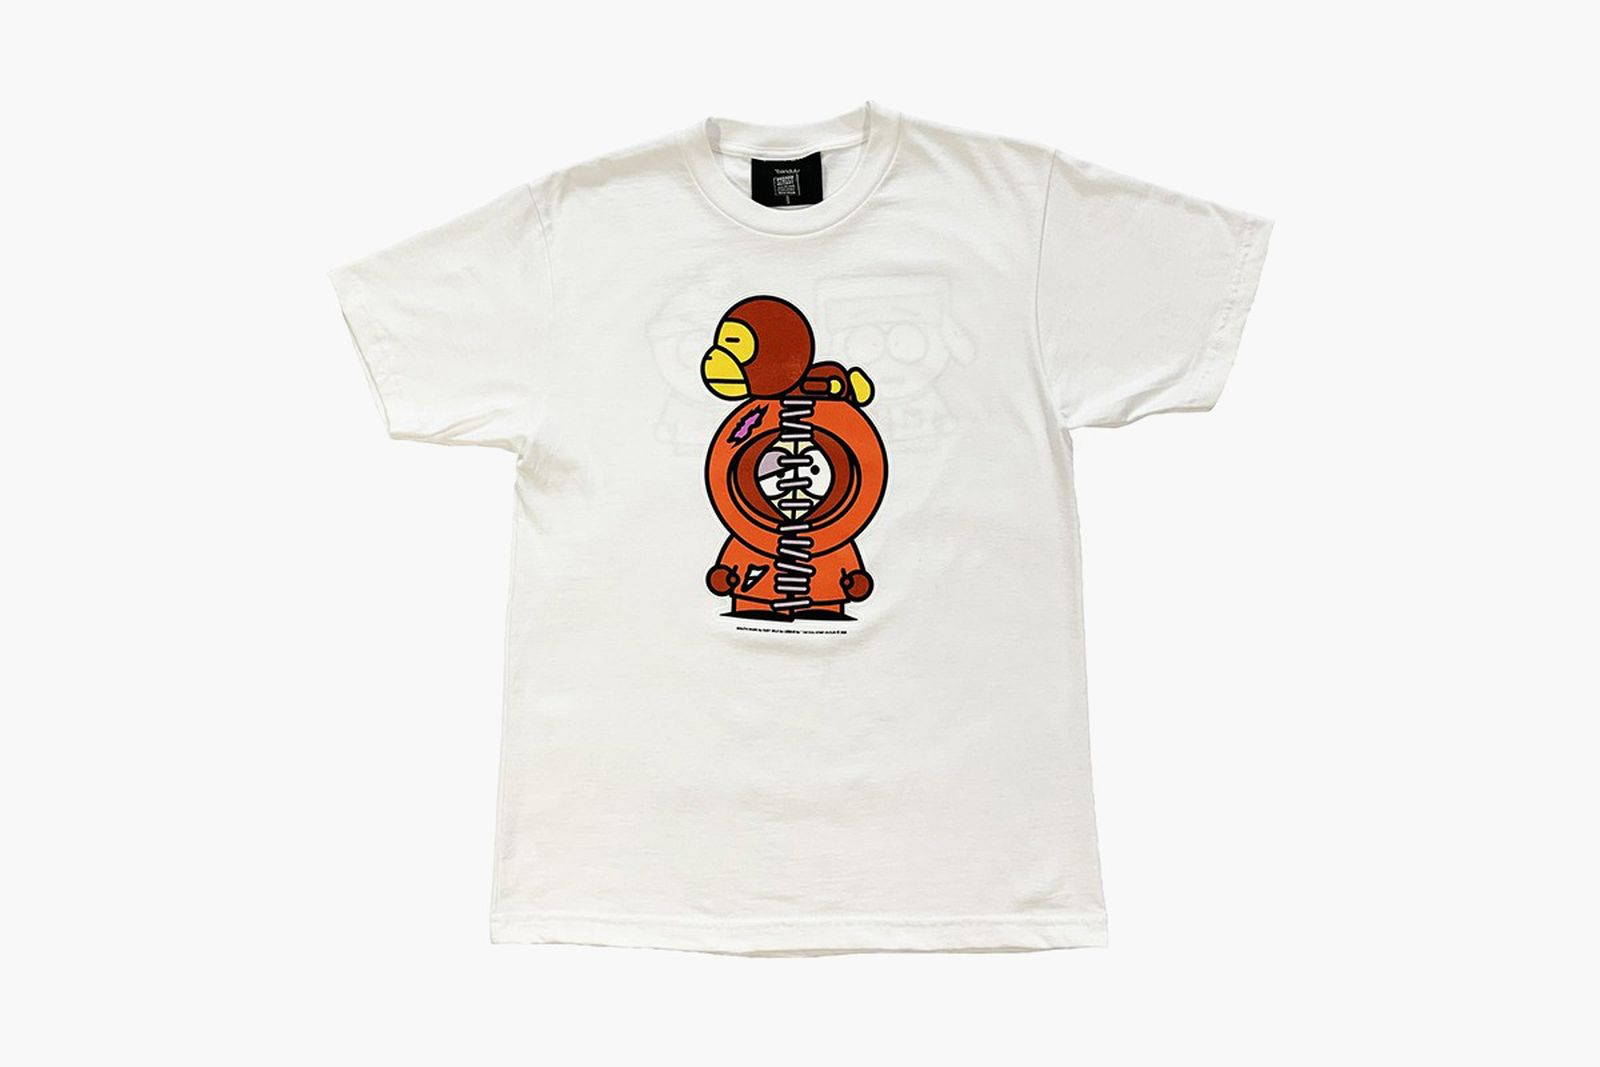 bape-south-park-t-shirt-02